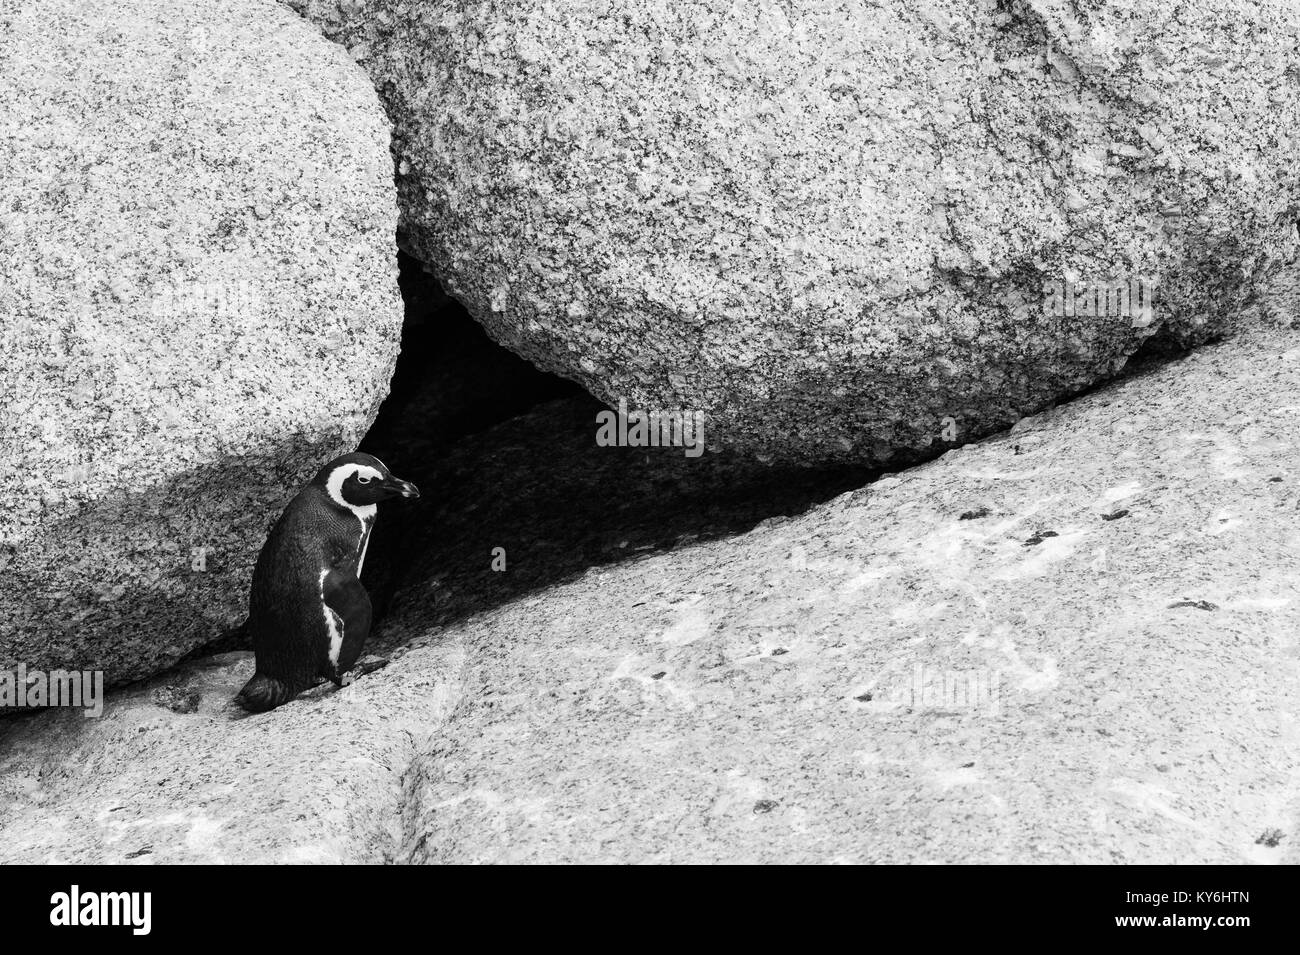 African Penguin, Spheniscus demersus, at Boulders Beach, Table Mountain National Park, Cape Town, South Africa - Stock Image